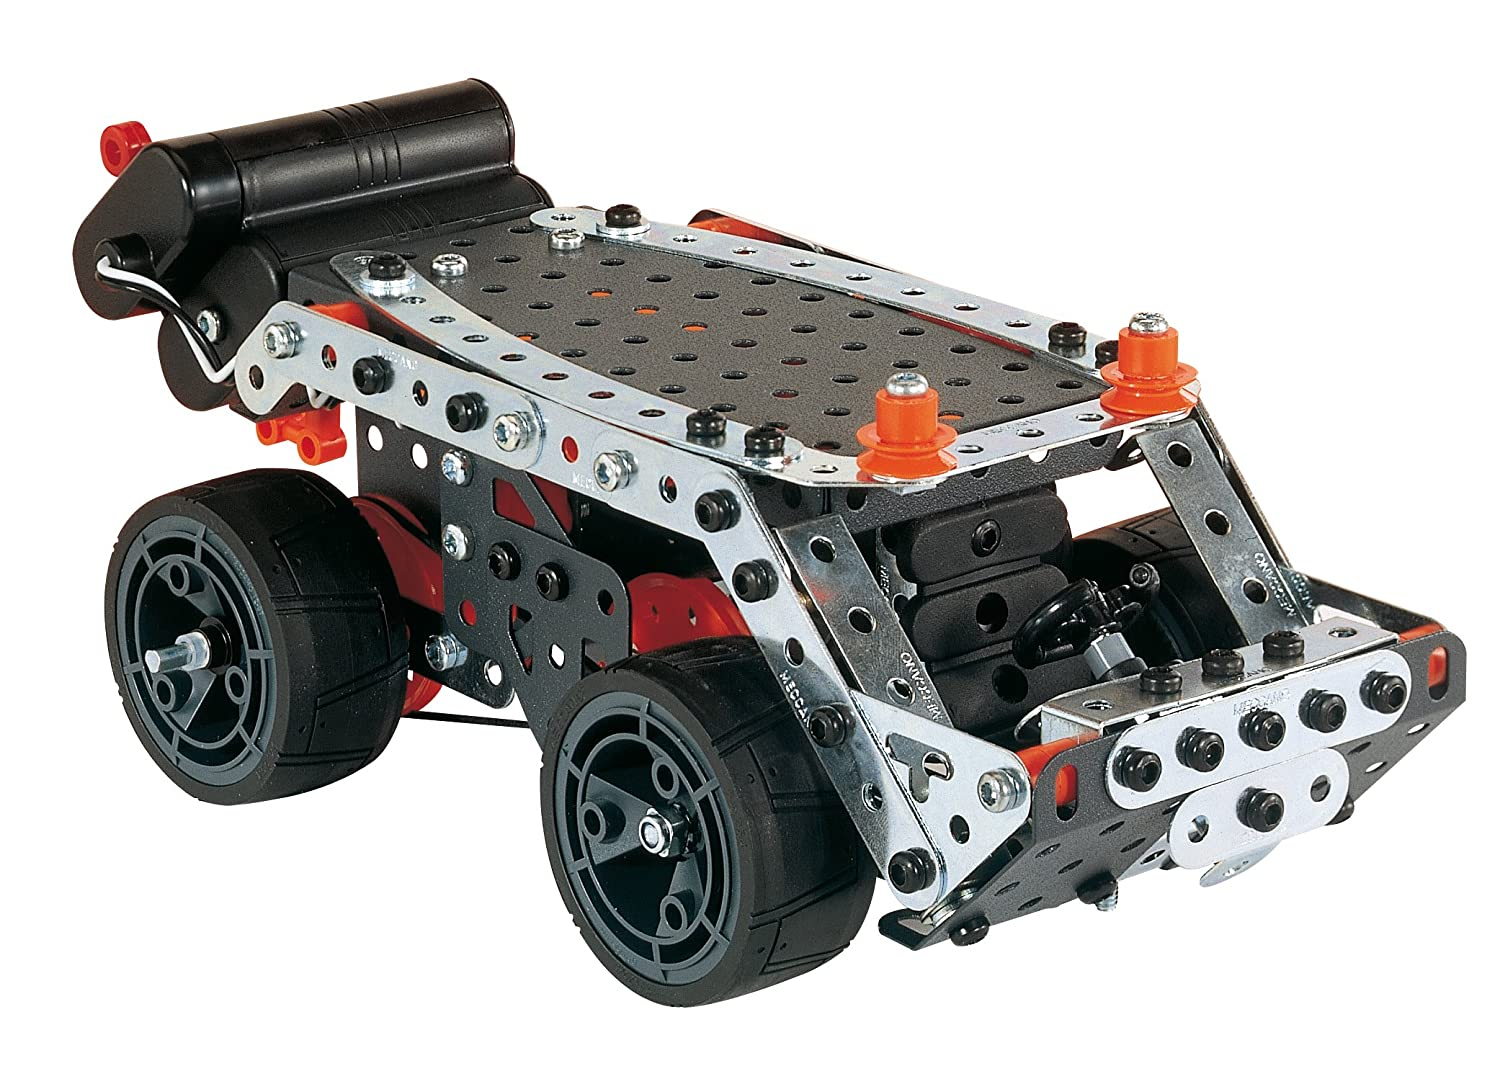 Buy Meccanoerector Motorized Super Contruction Set 640 Piece Motor Reversing Switches Electronics In Meccano Metal Assorted Sets Online At Low Prices India